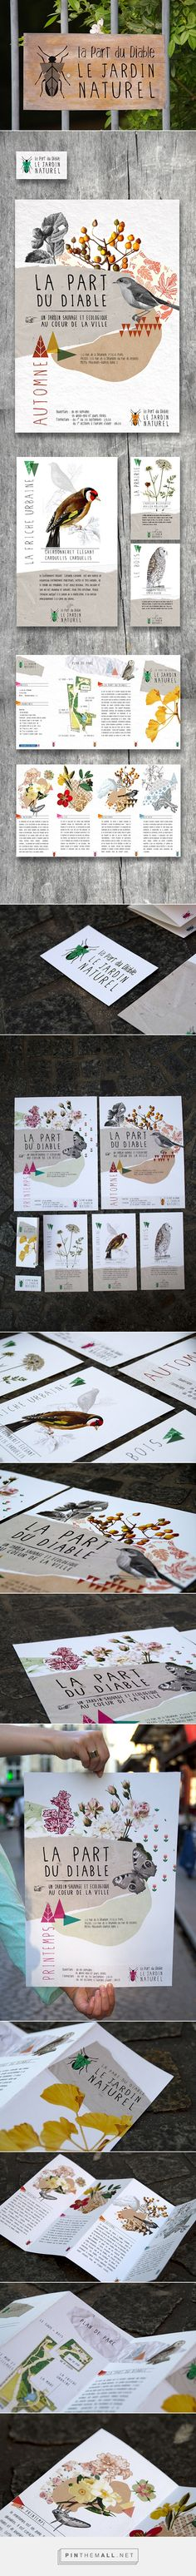 Natural Garden, Paris on Behance | Fivestar Branding – Design and Branding Agency & Inspiration Gallery